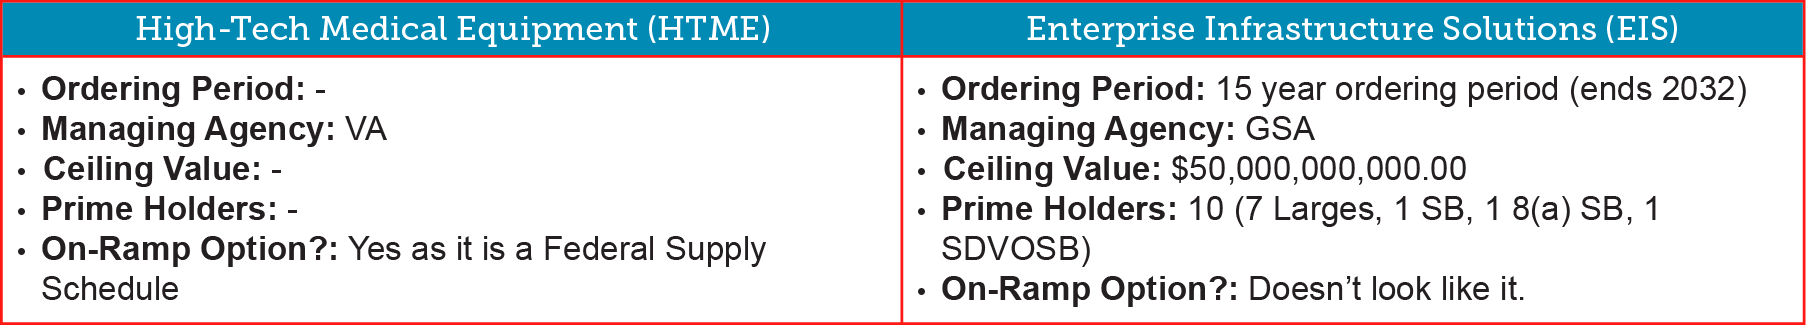 Category Management 2018 Article. Figure 1